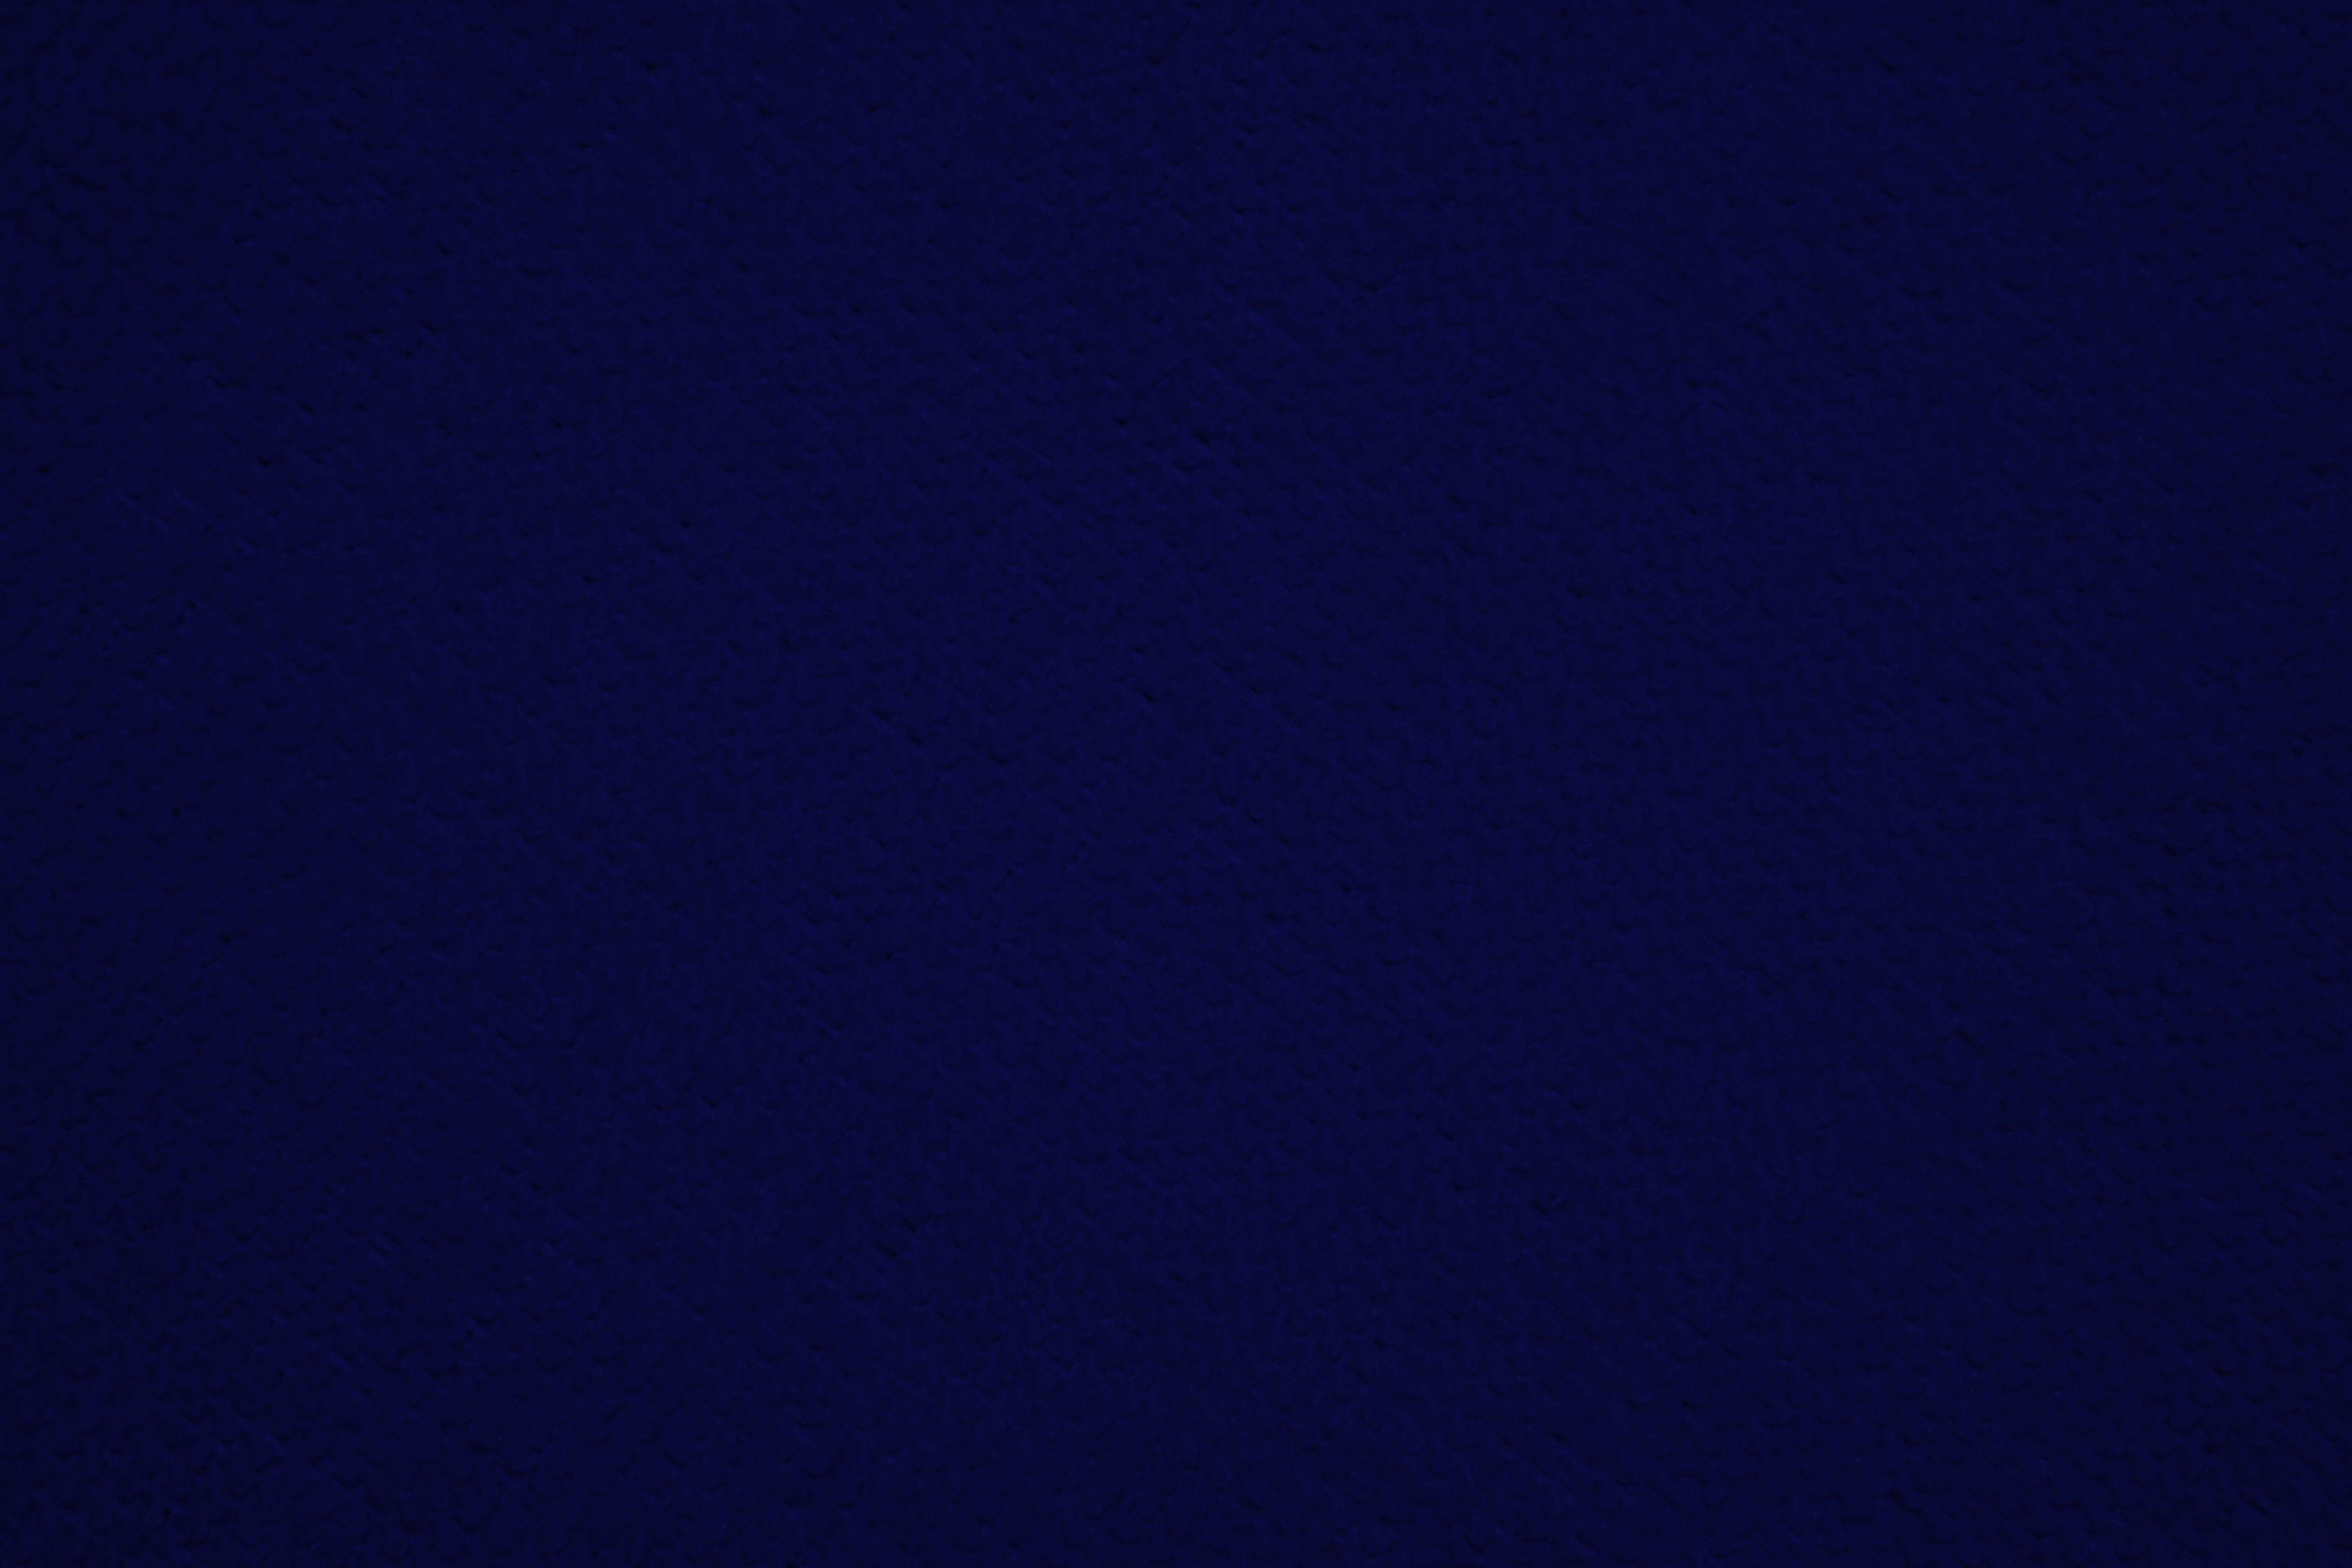 Navy Blue Navy Blue Background Hd Wallpapers Pulse